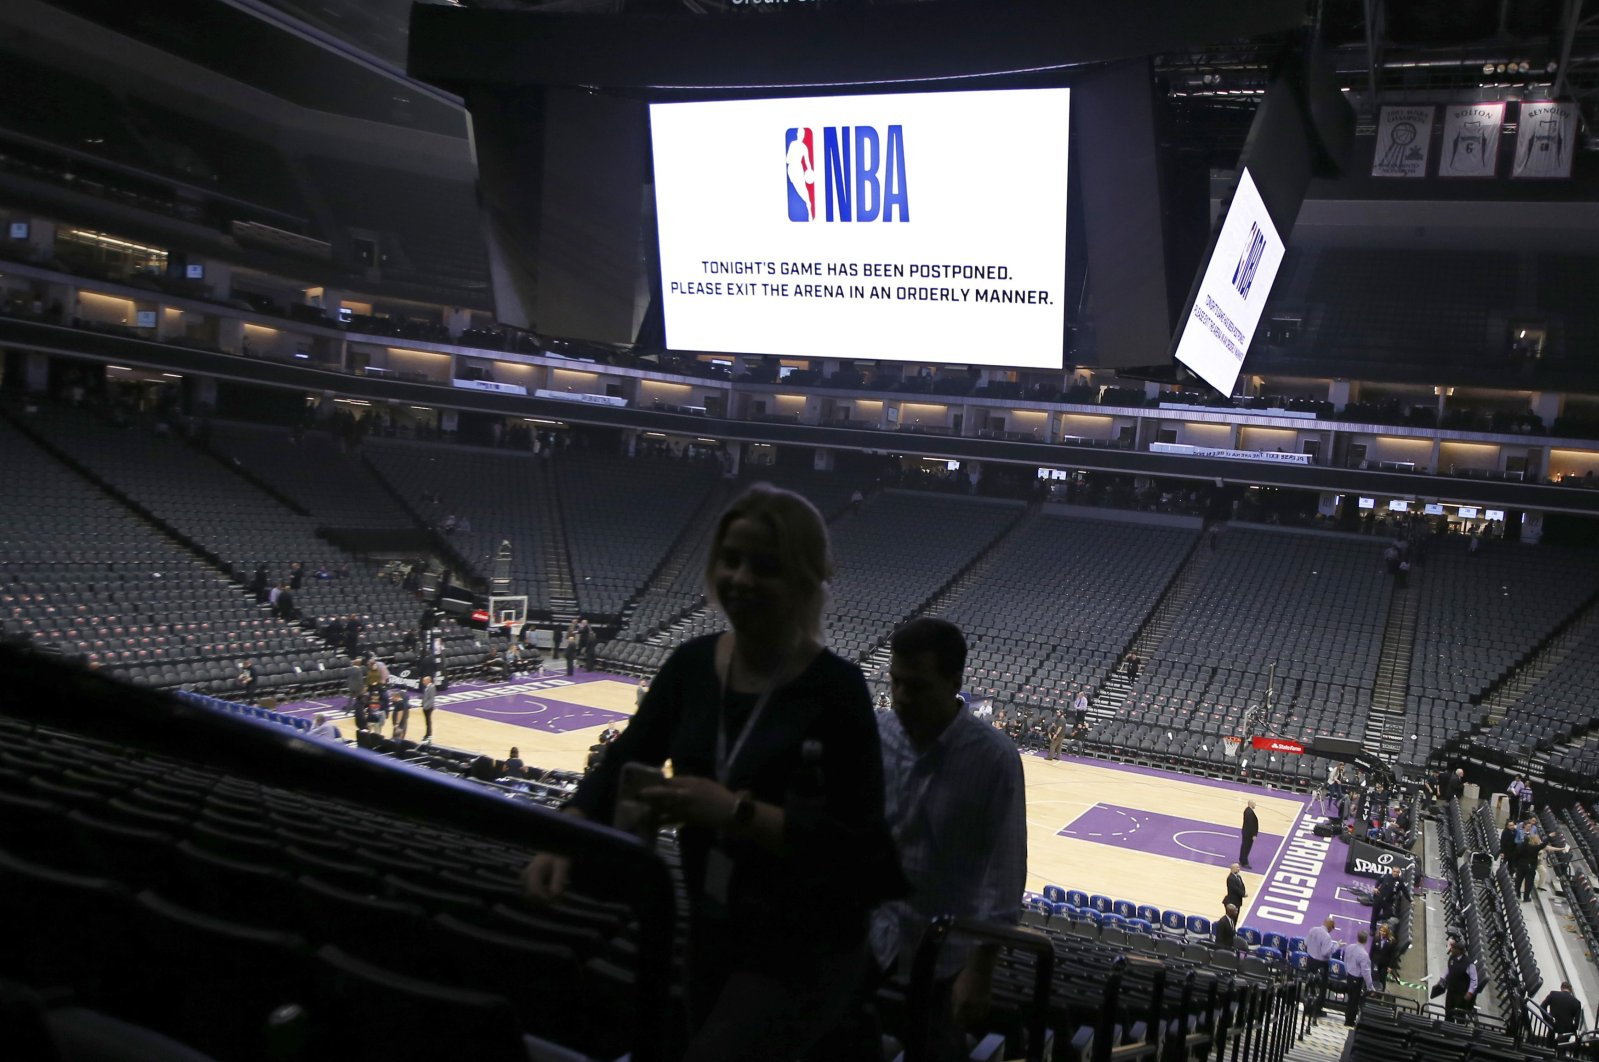 """Fans leave the Golden 1 Center after a NBA basketball game was postponed at the last minute over an """"abundance of caution"""" after a player tested positive for the coronavirus, Sacramento, United States, Wednesday, March 11, 2020. (AP Photo)"""